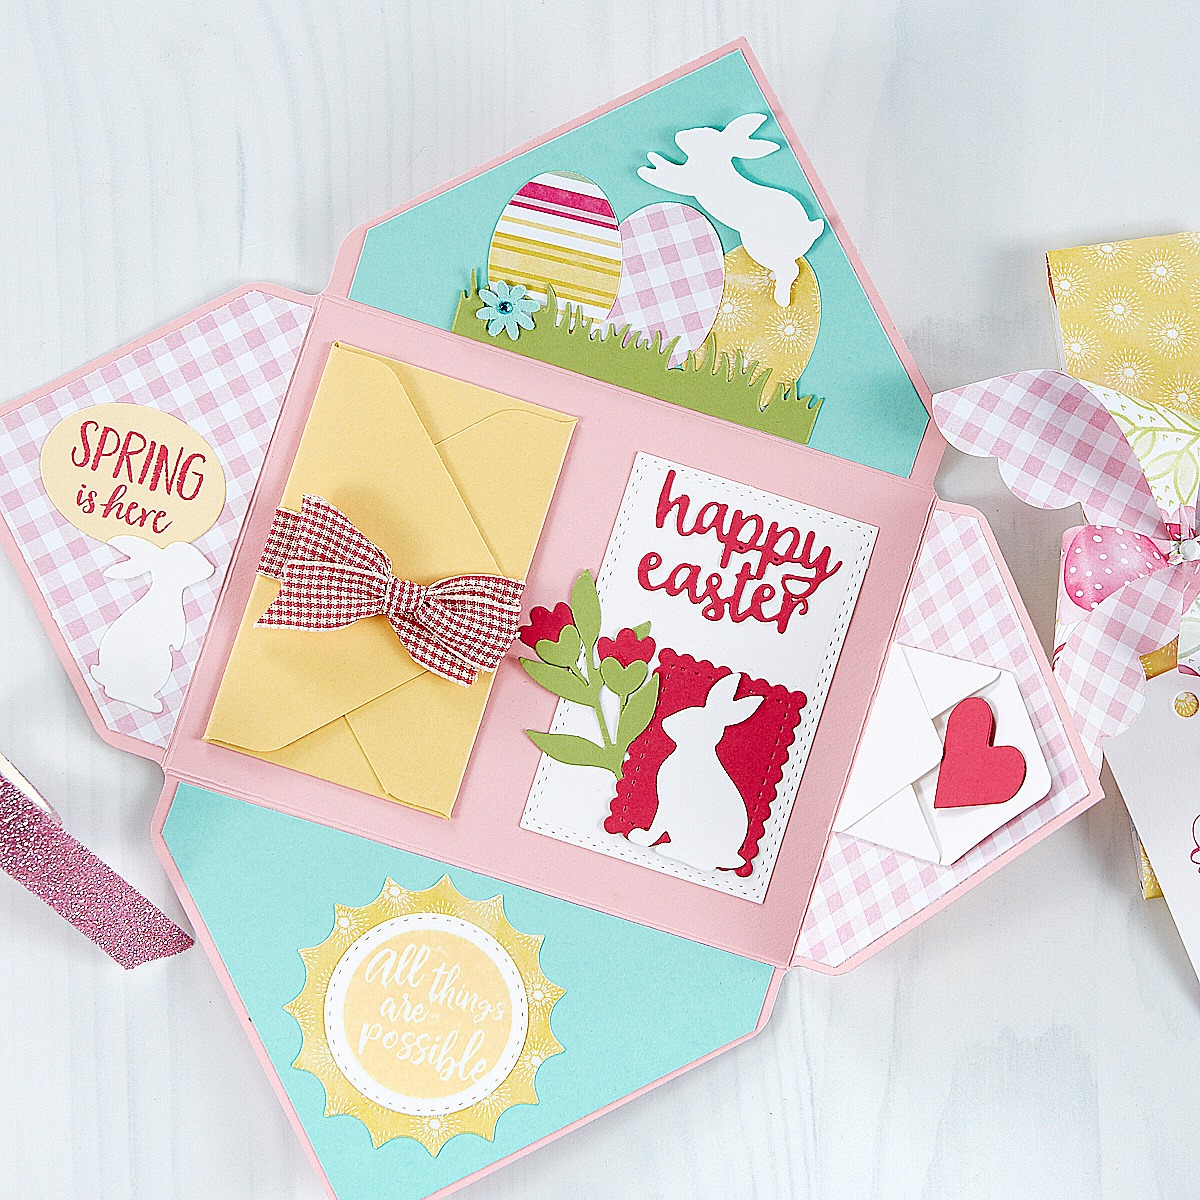 Easter exploding envelope card making idea with die cutting and stamping. Visit my blog for a graduation idea, plus springtime and easter ideas complete with tutorials and lots more photos!